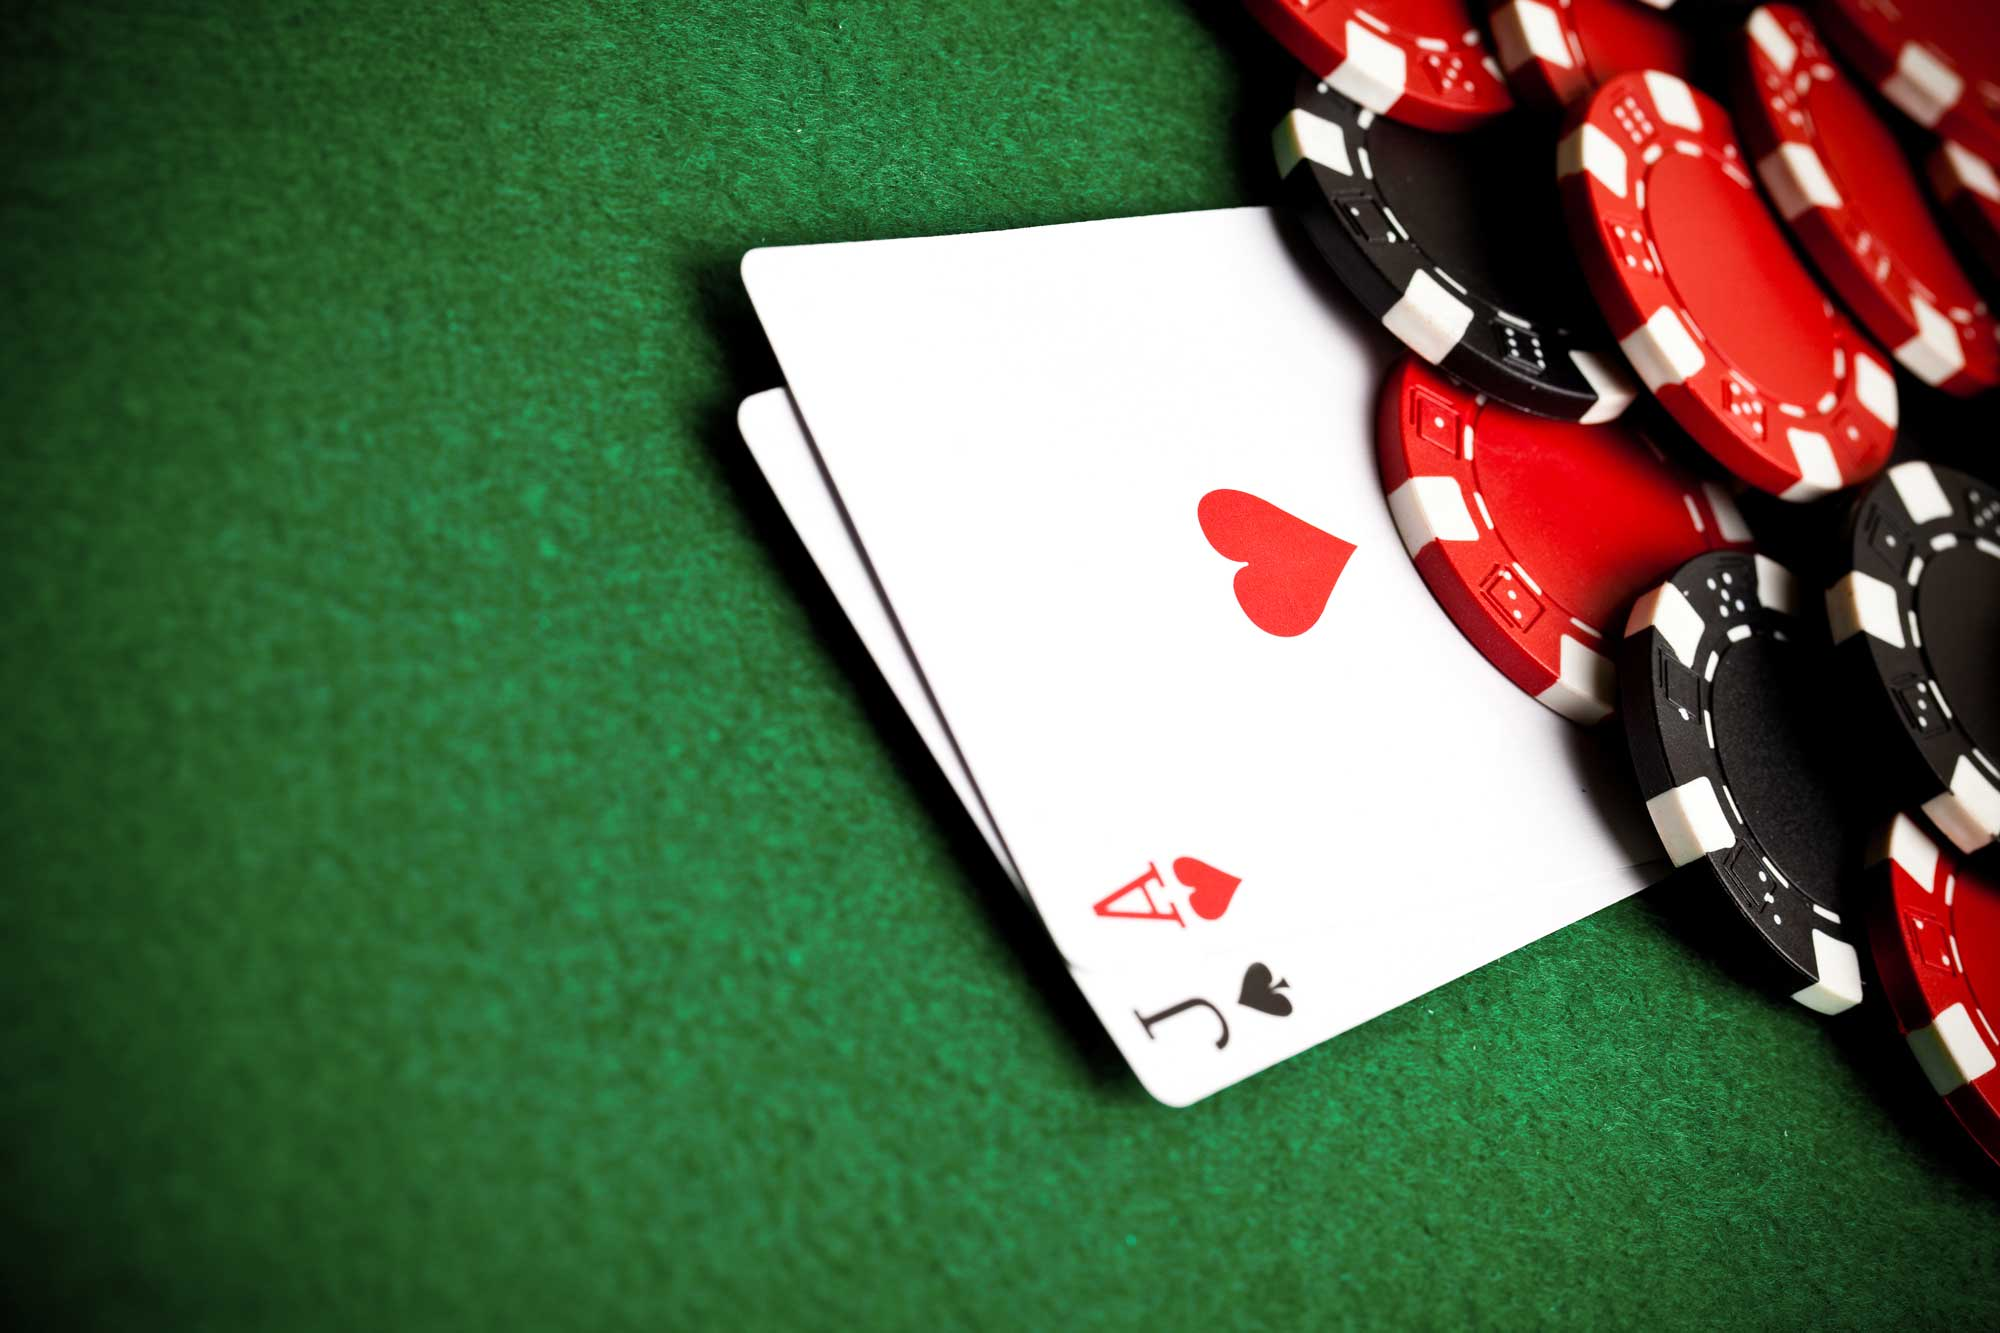 How to play Blackjack? | Blackjack Rules | Casino777 Blog